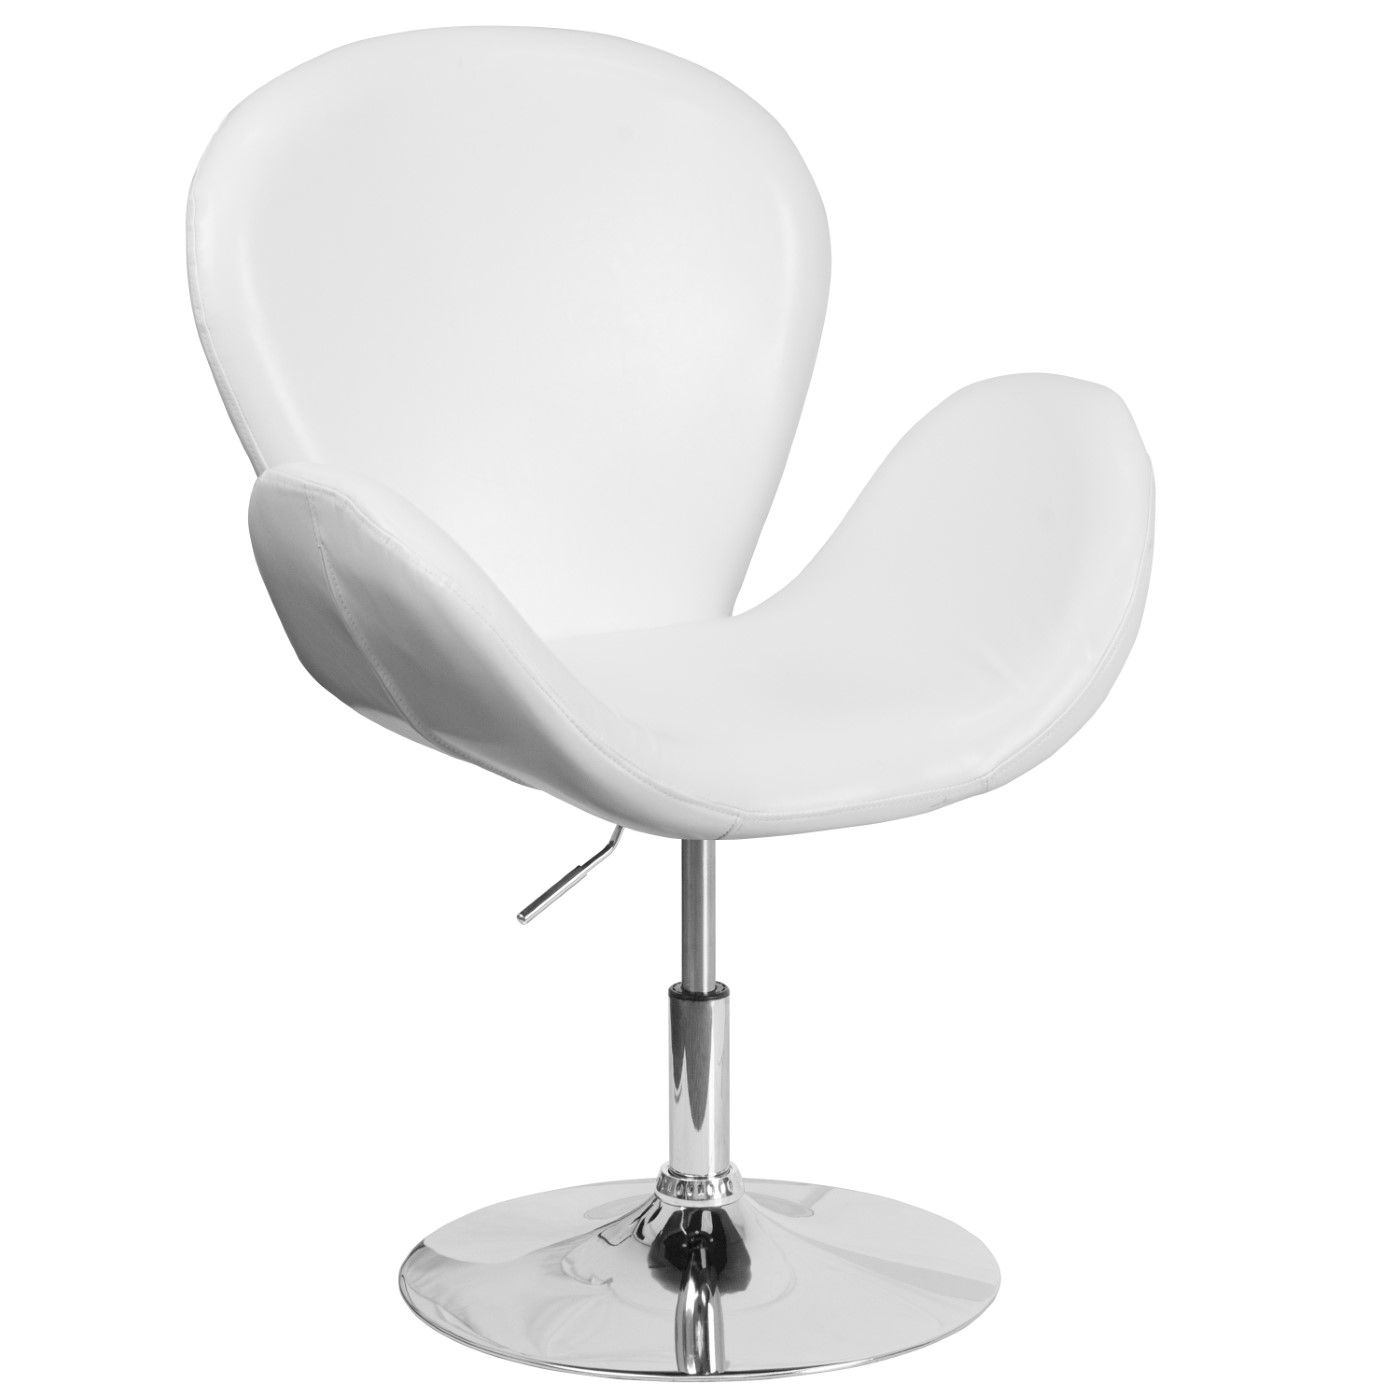 TOUGH ENOUGH Trestron Series White LeatherSoft Side Reception Chair with Adjustable Height Seat